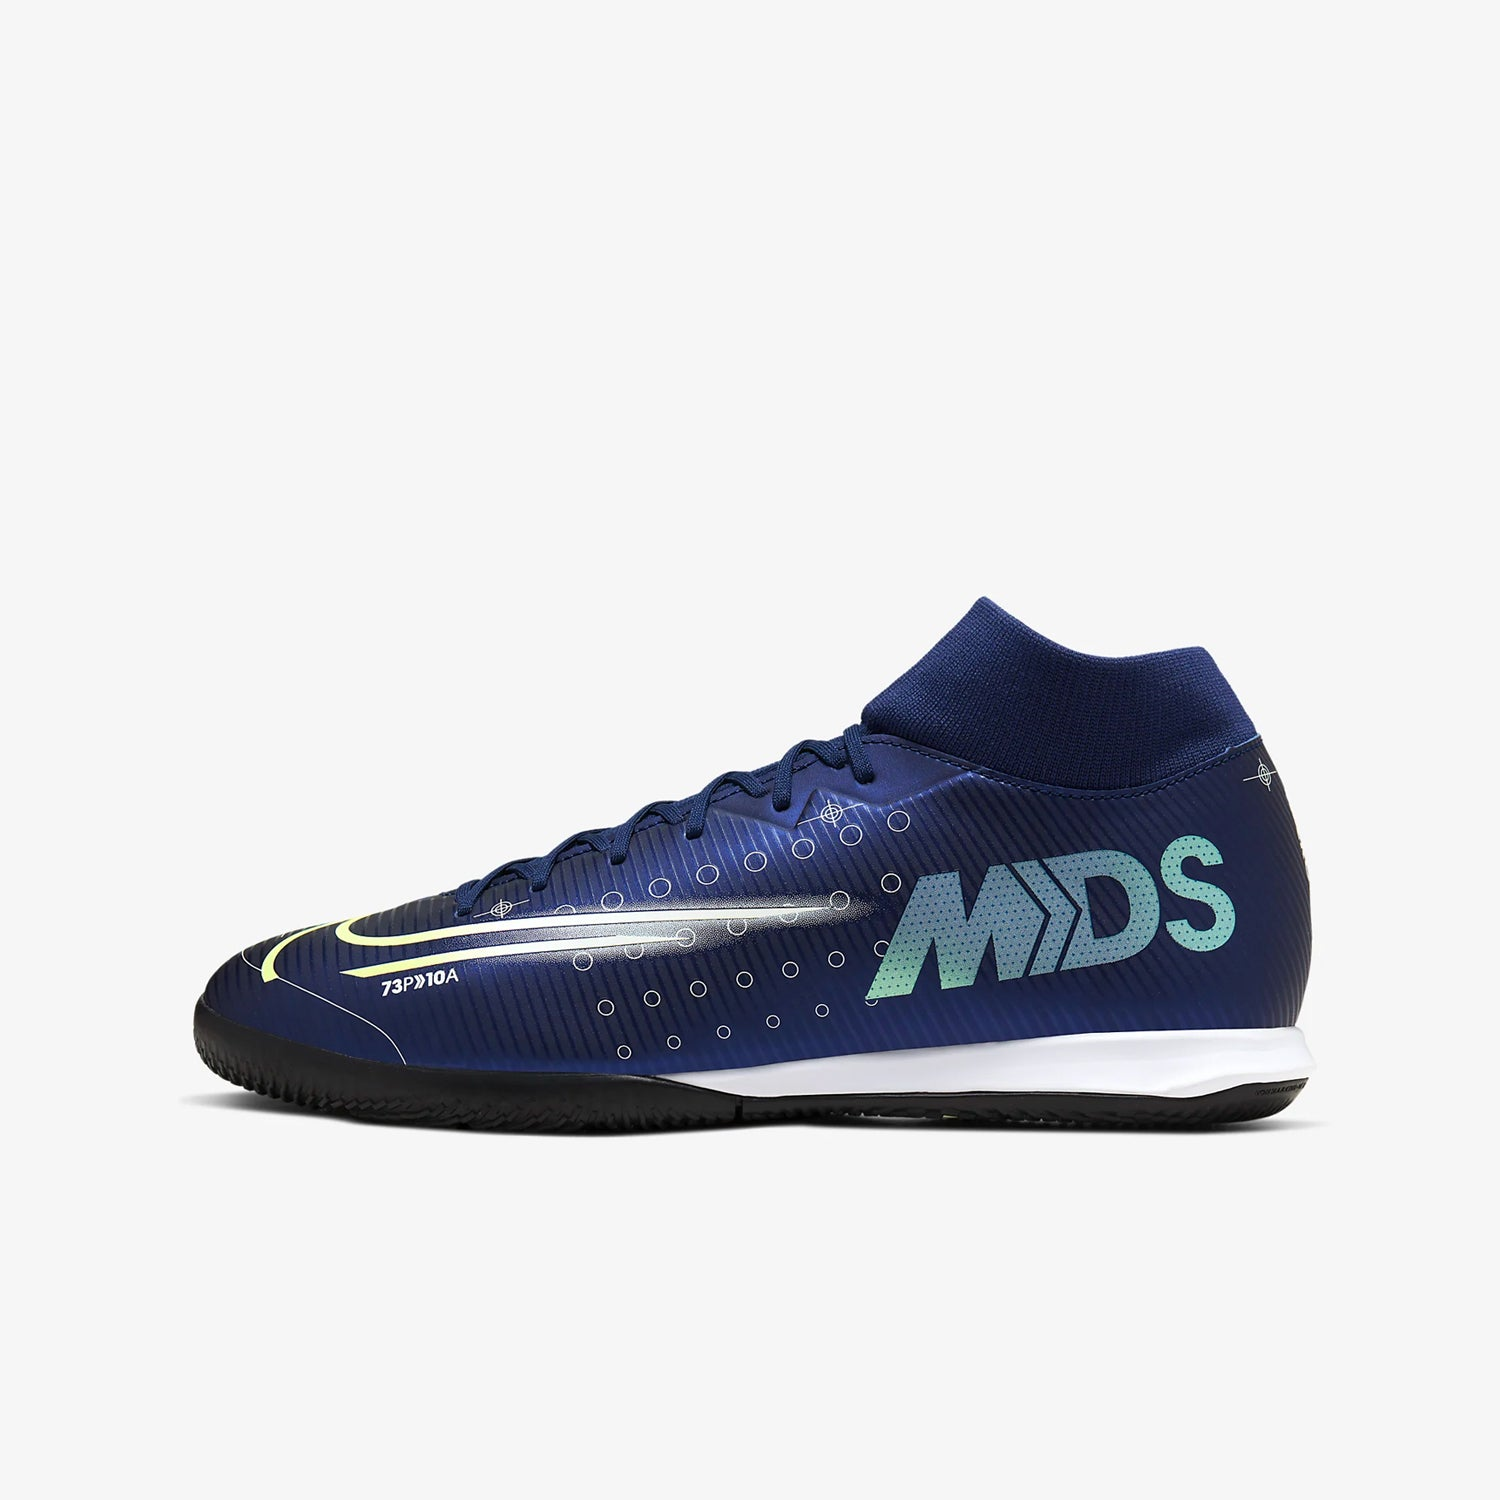 Mercurial Superfly 7 Academy MDS IC